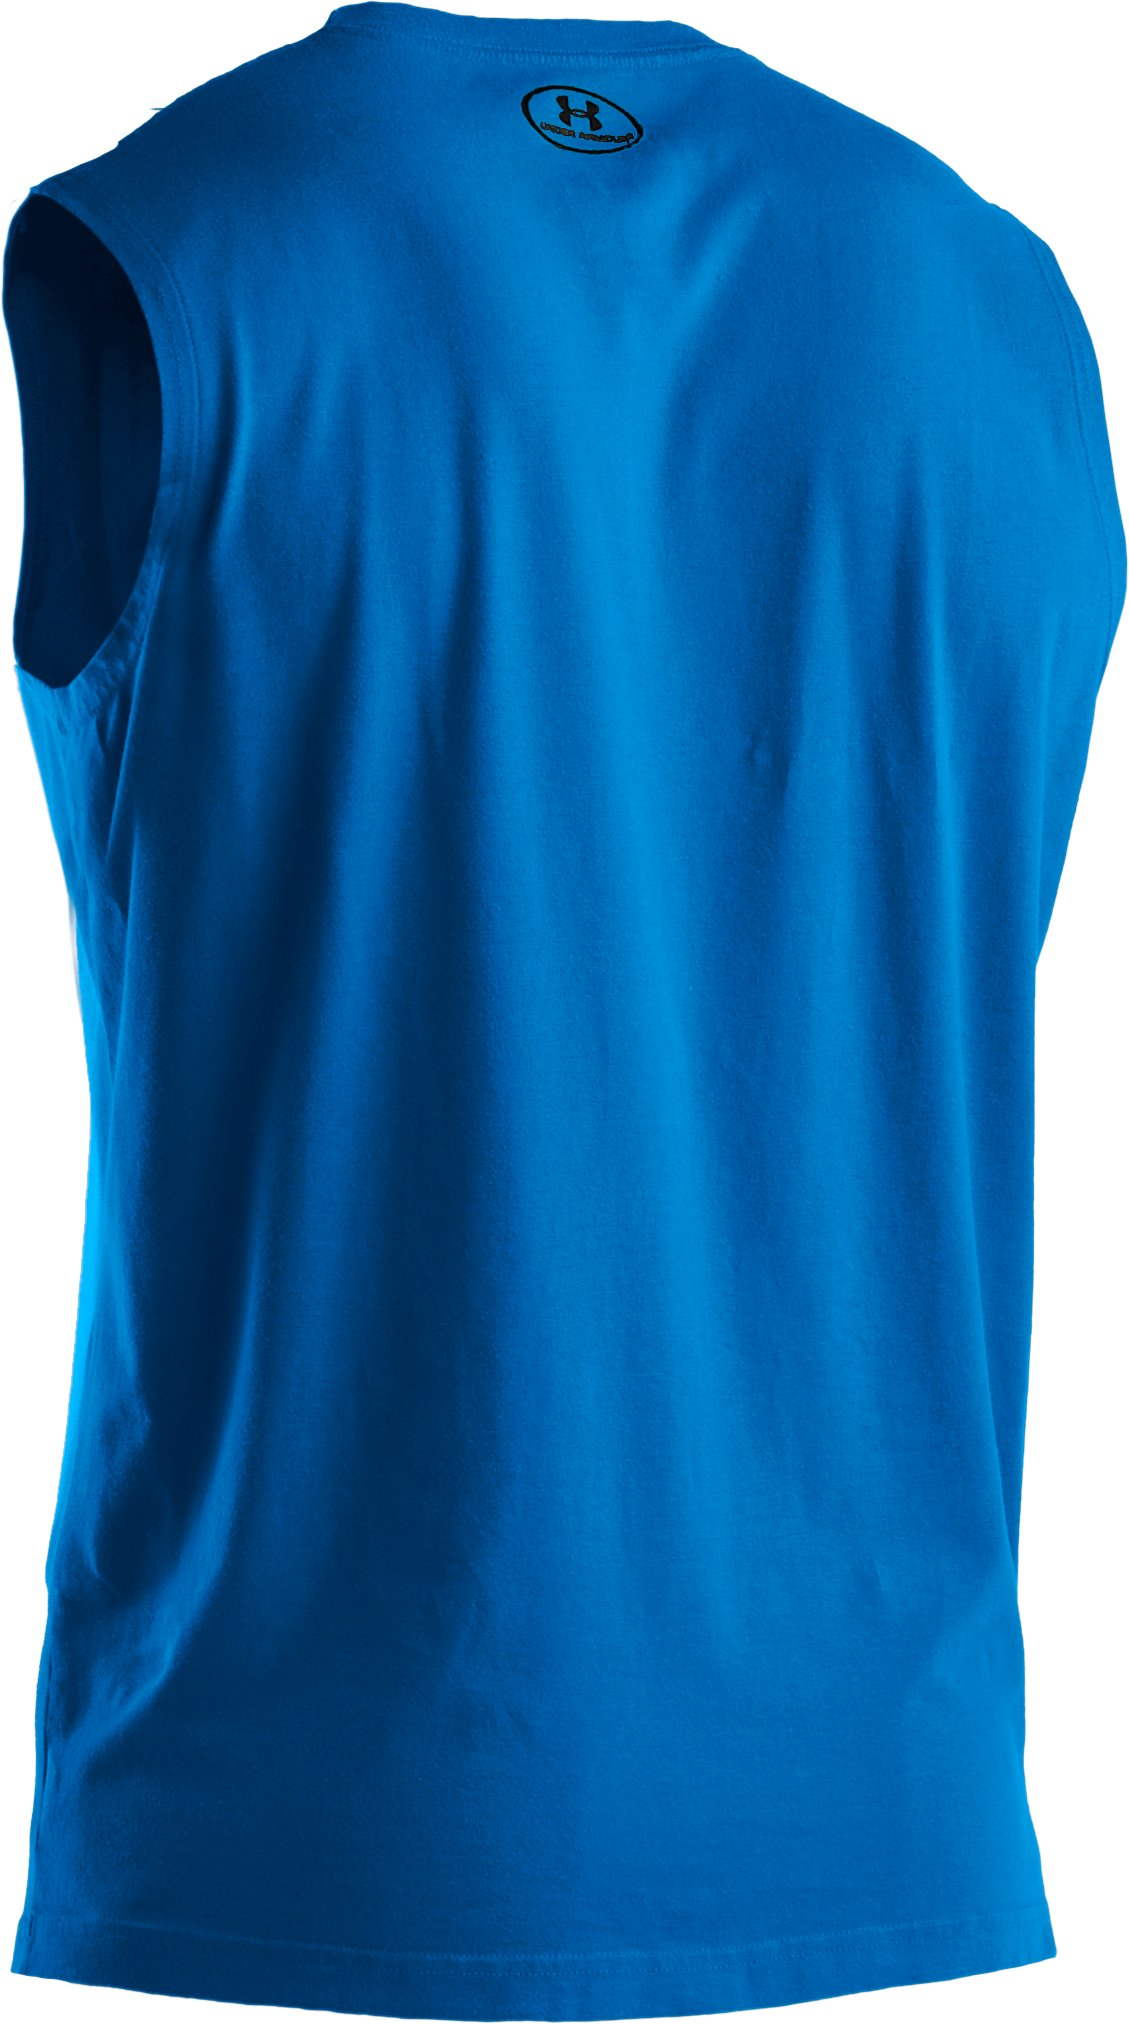 Men's Charged Cotton® Sleeveless T-shirt, ELECTRIC BLUE